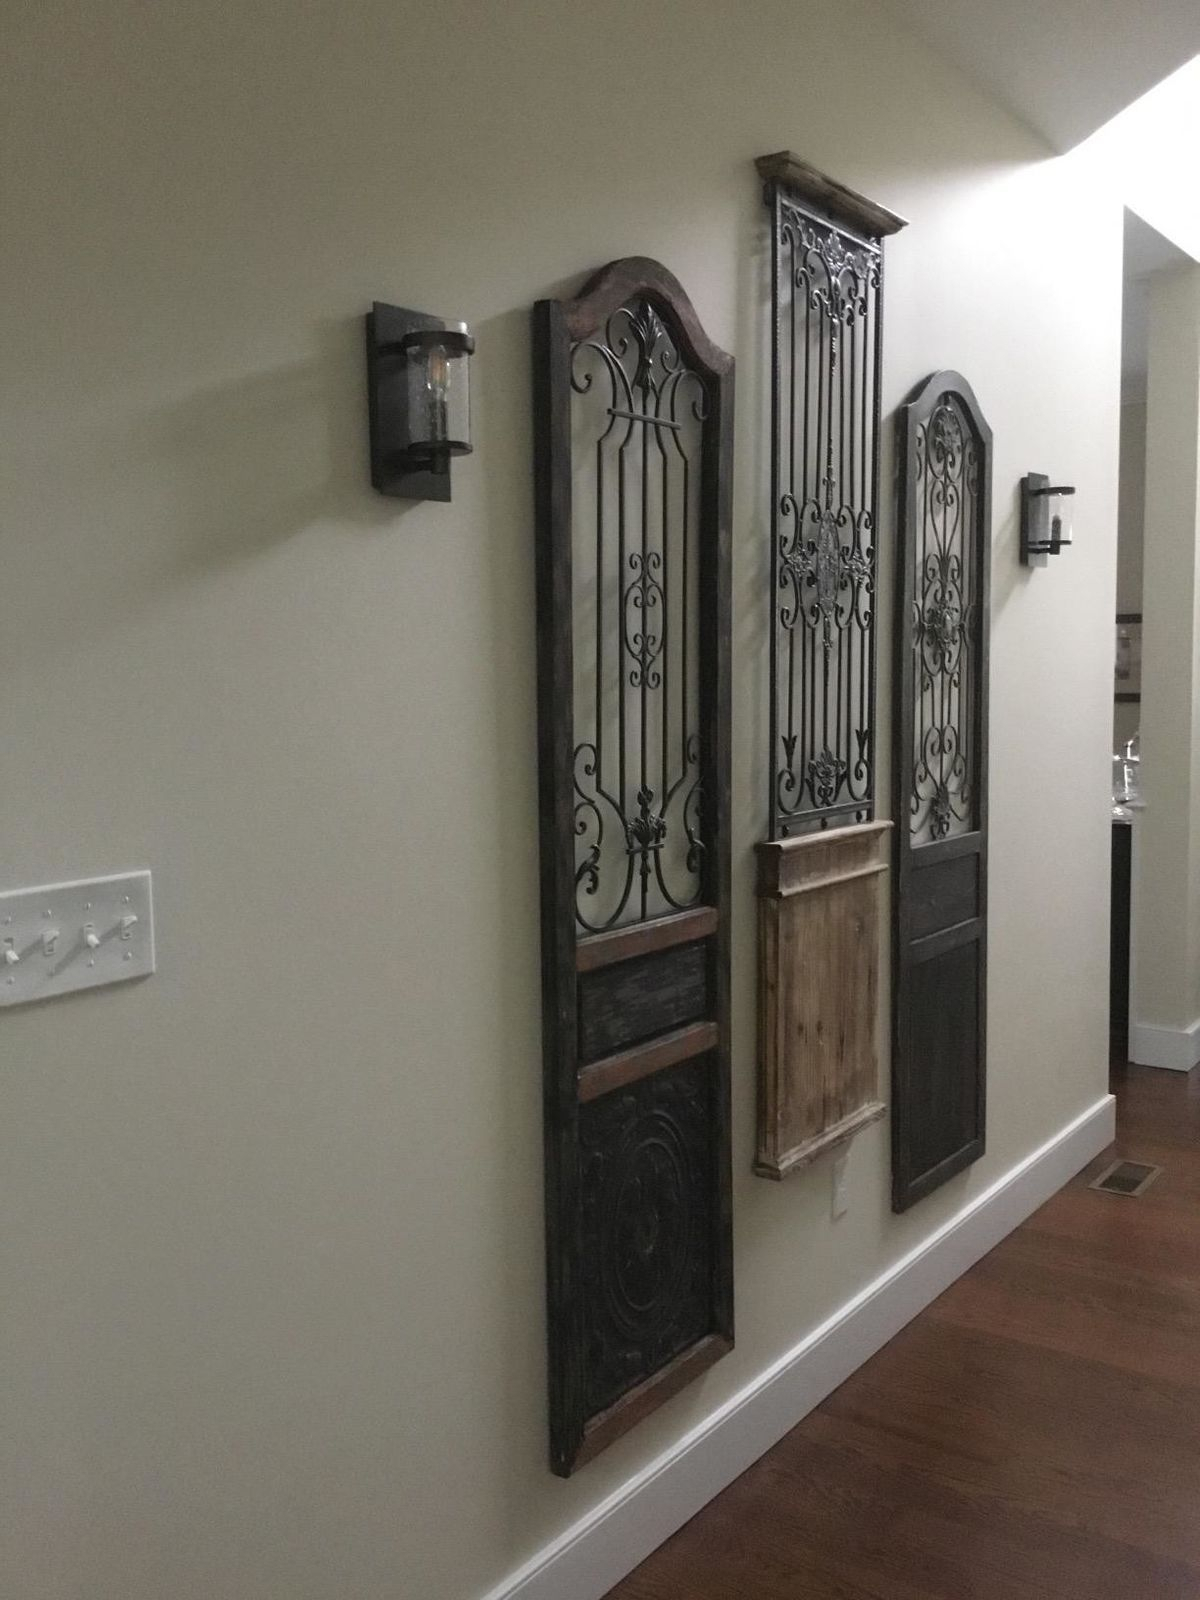 Iron Scroll Work Wood Wall Decor Garden Rustic Arched inside Scroll Panel Wall Decor (Image 17 of 30)